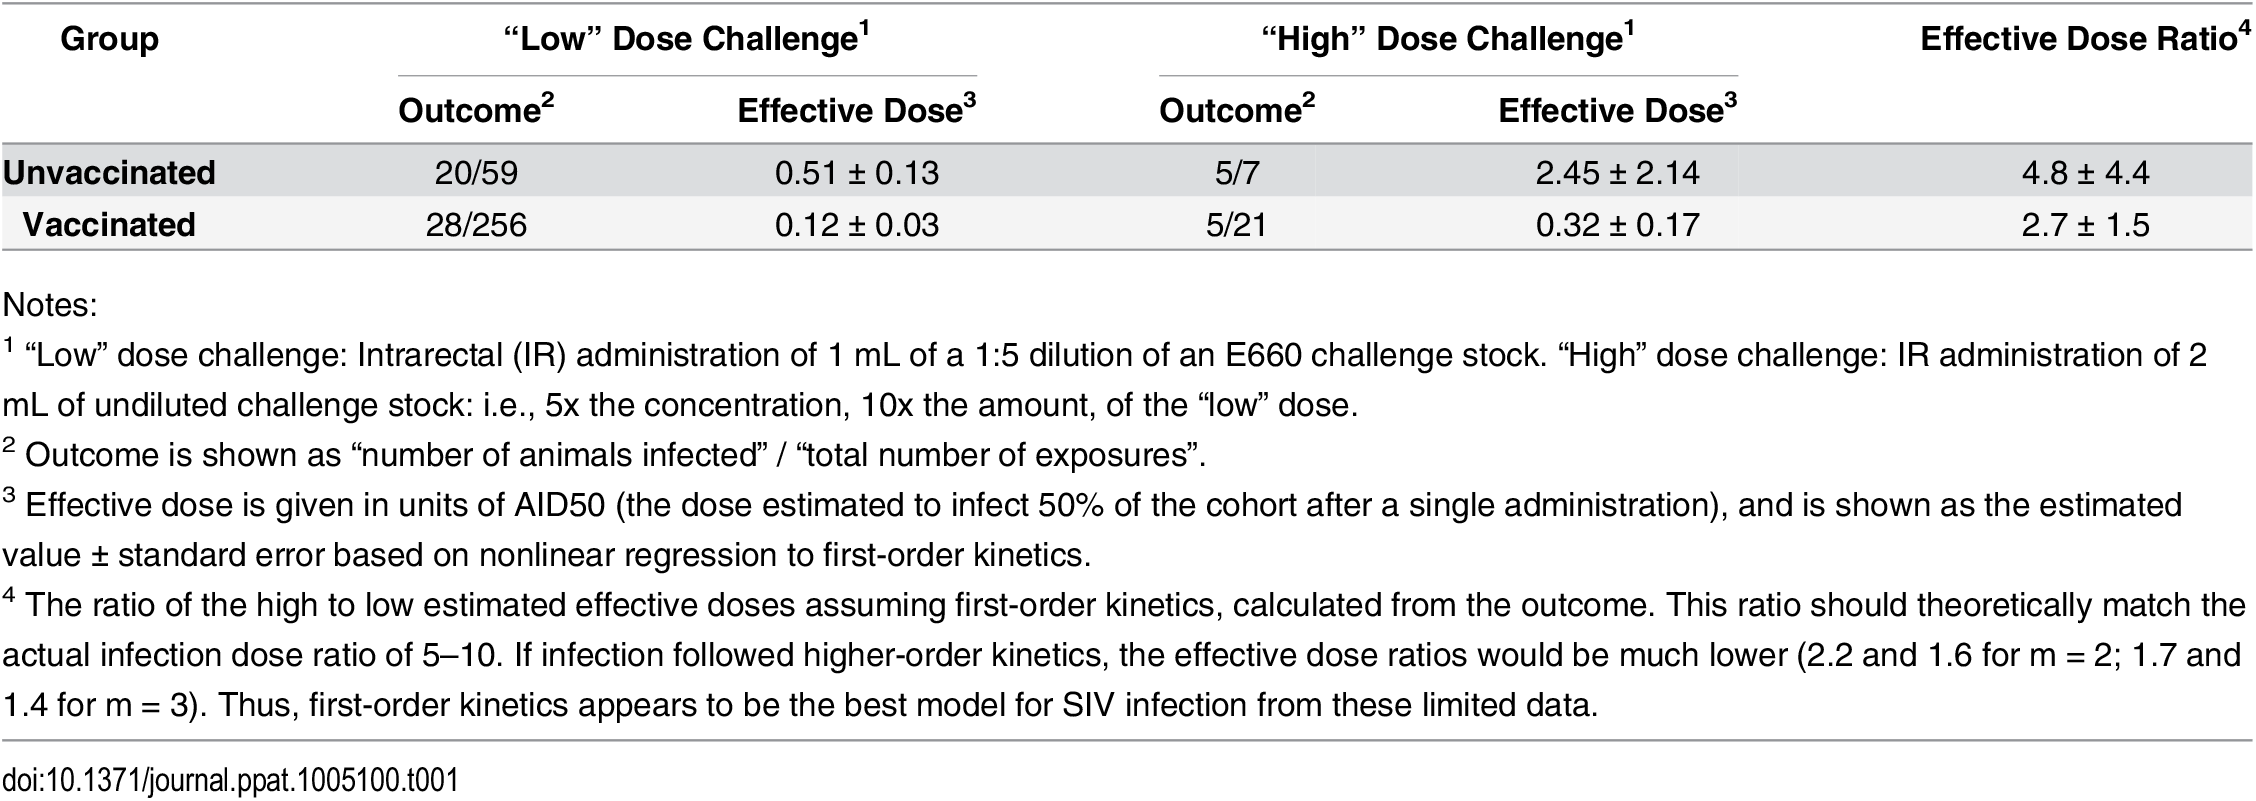 SIV challenge dose impact on infection rate.